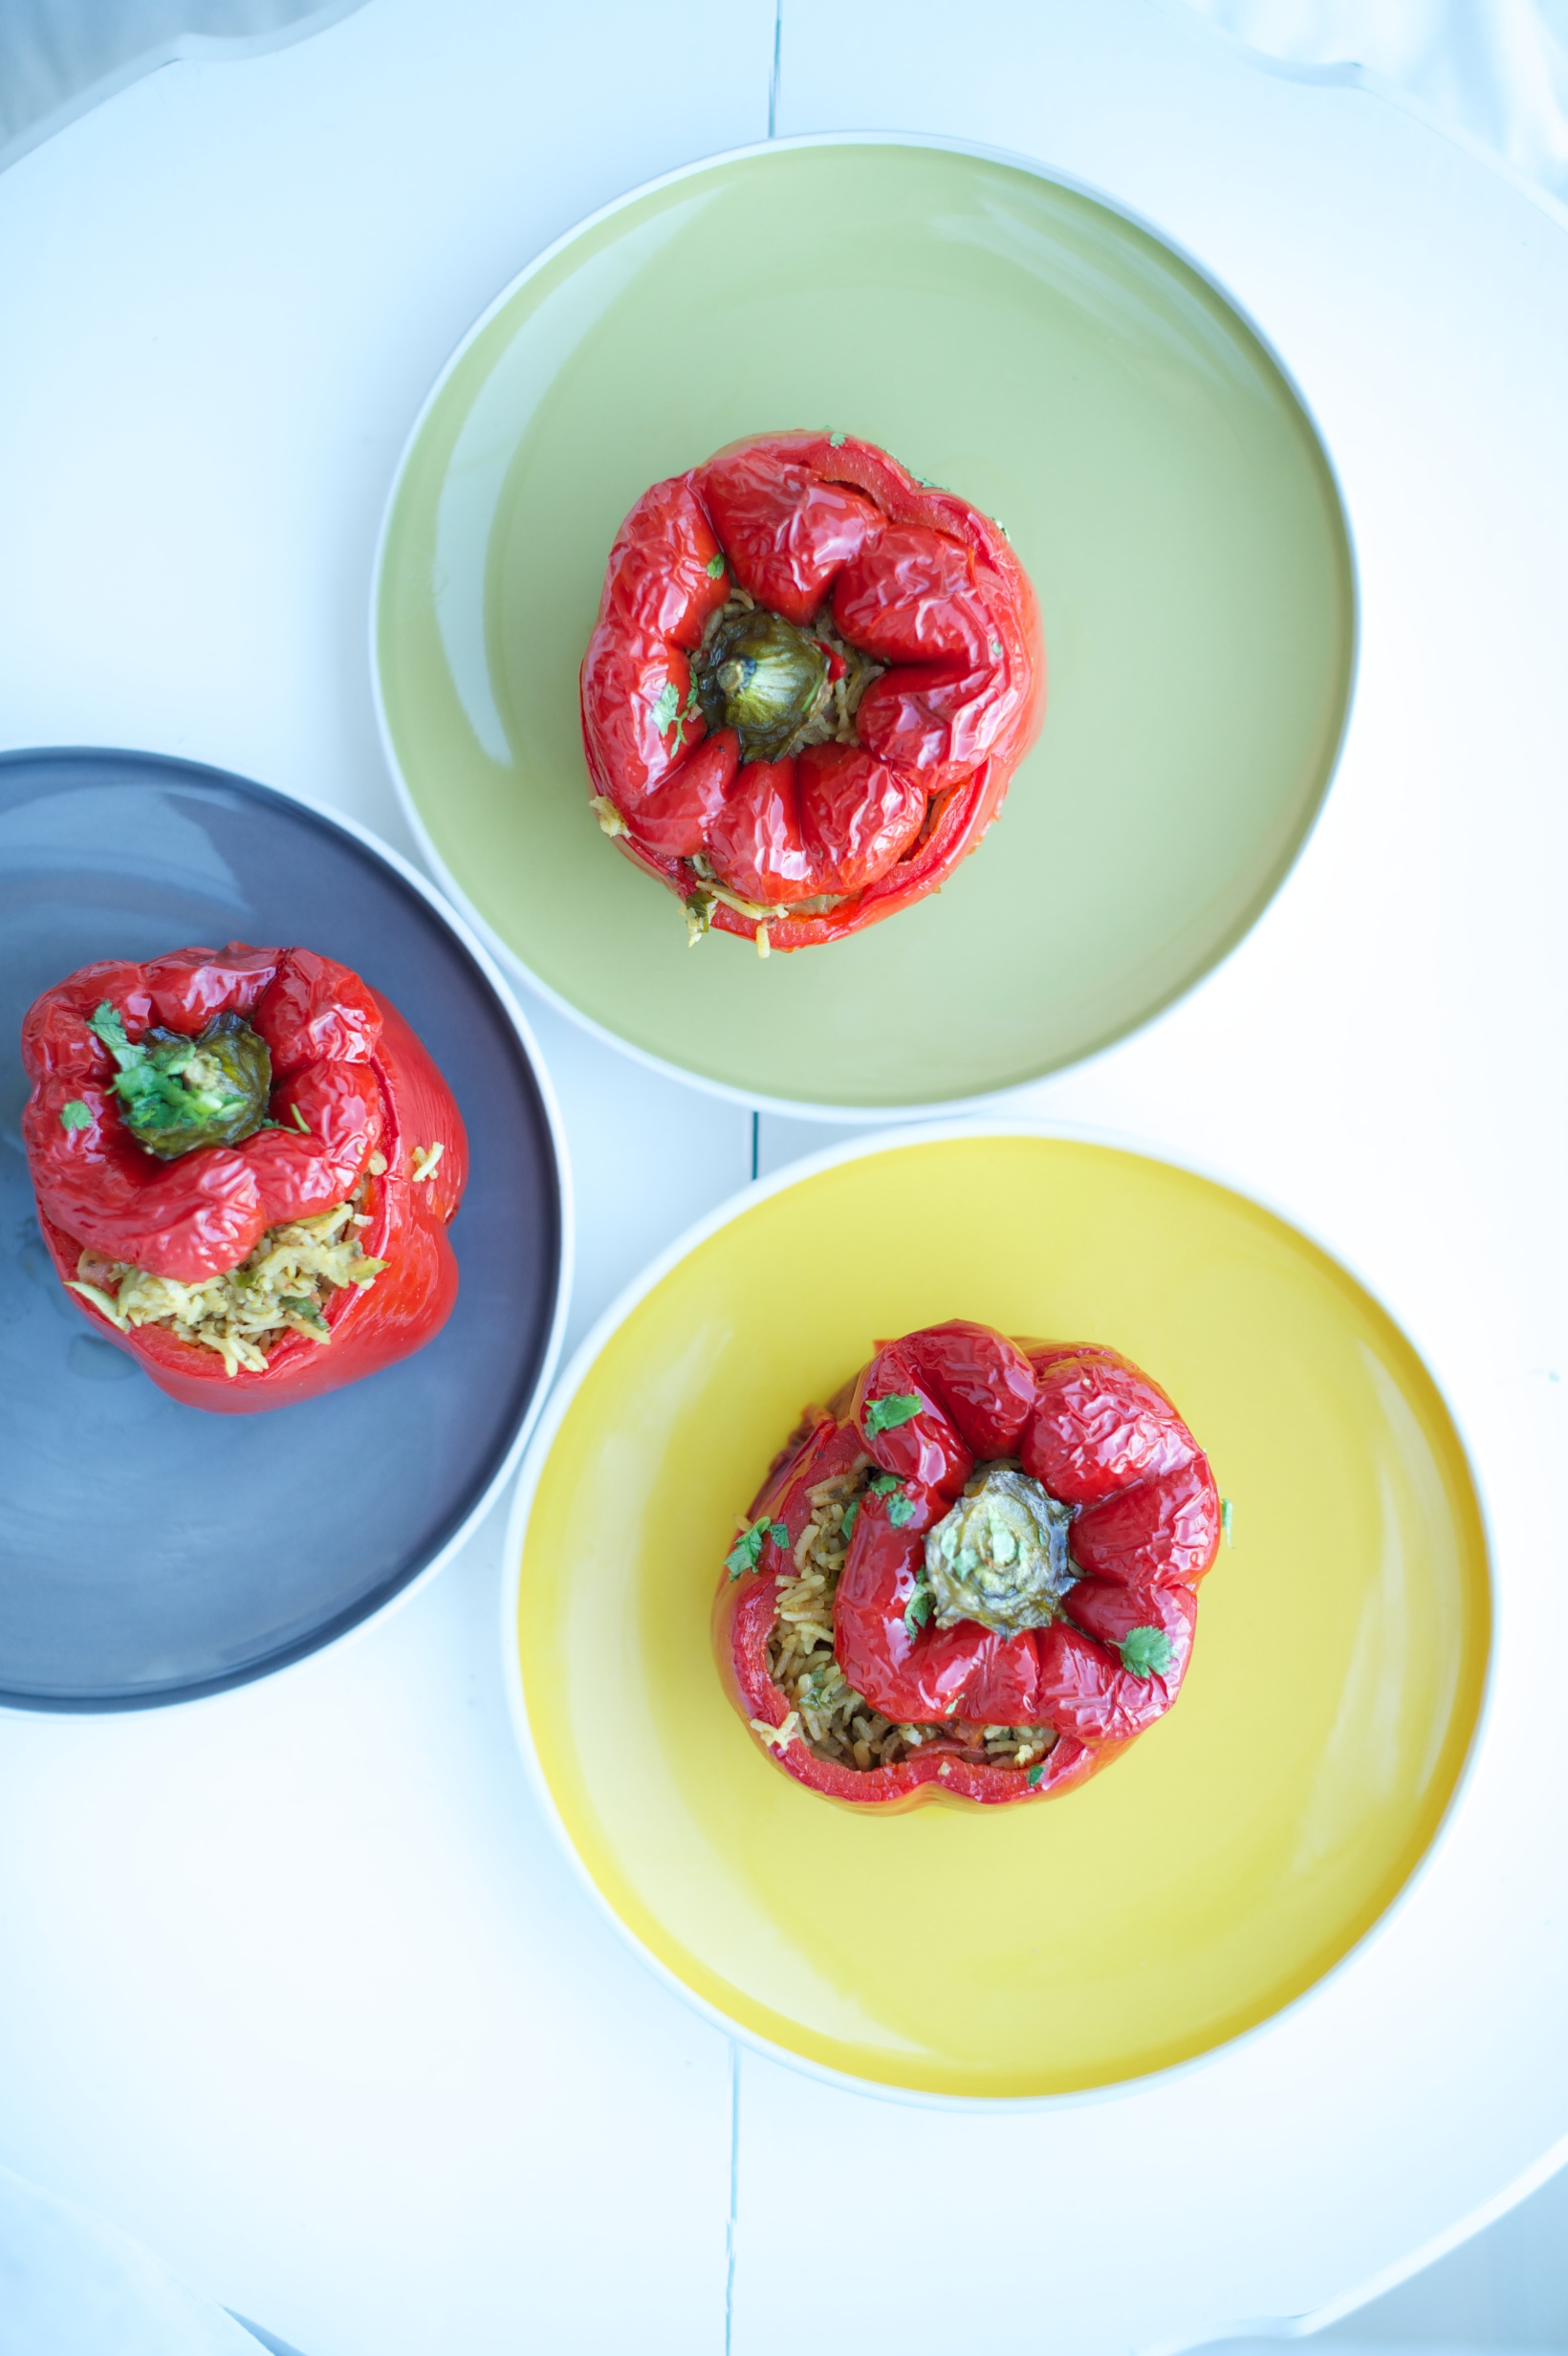 SEVENTIES-STYLE RED PEPPERS STUFFED WITH SPICY RICE